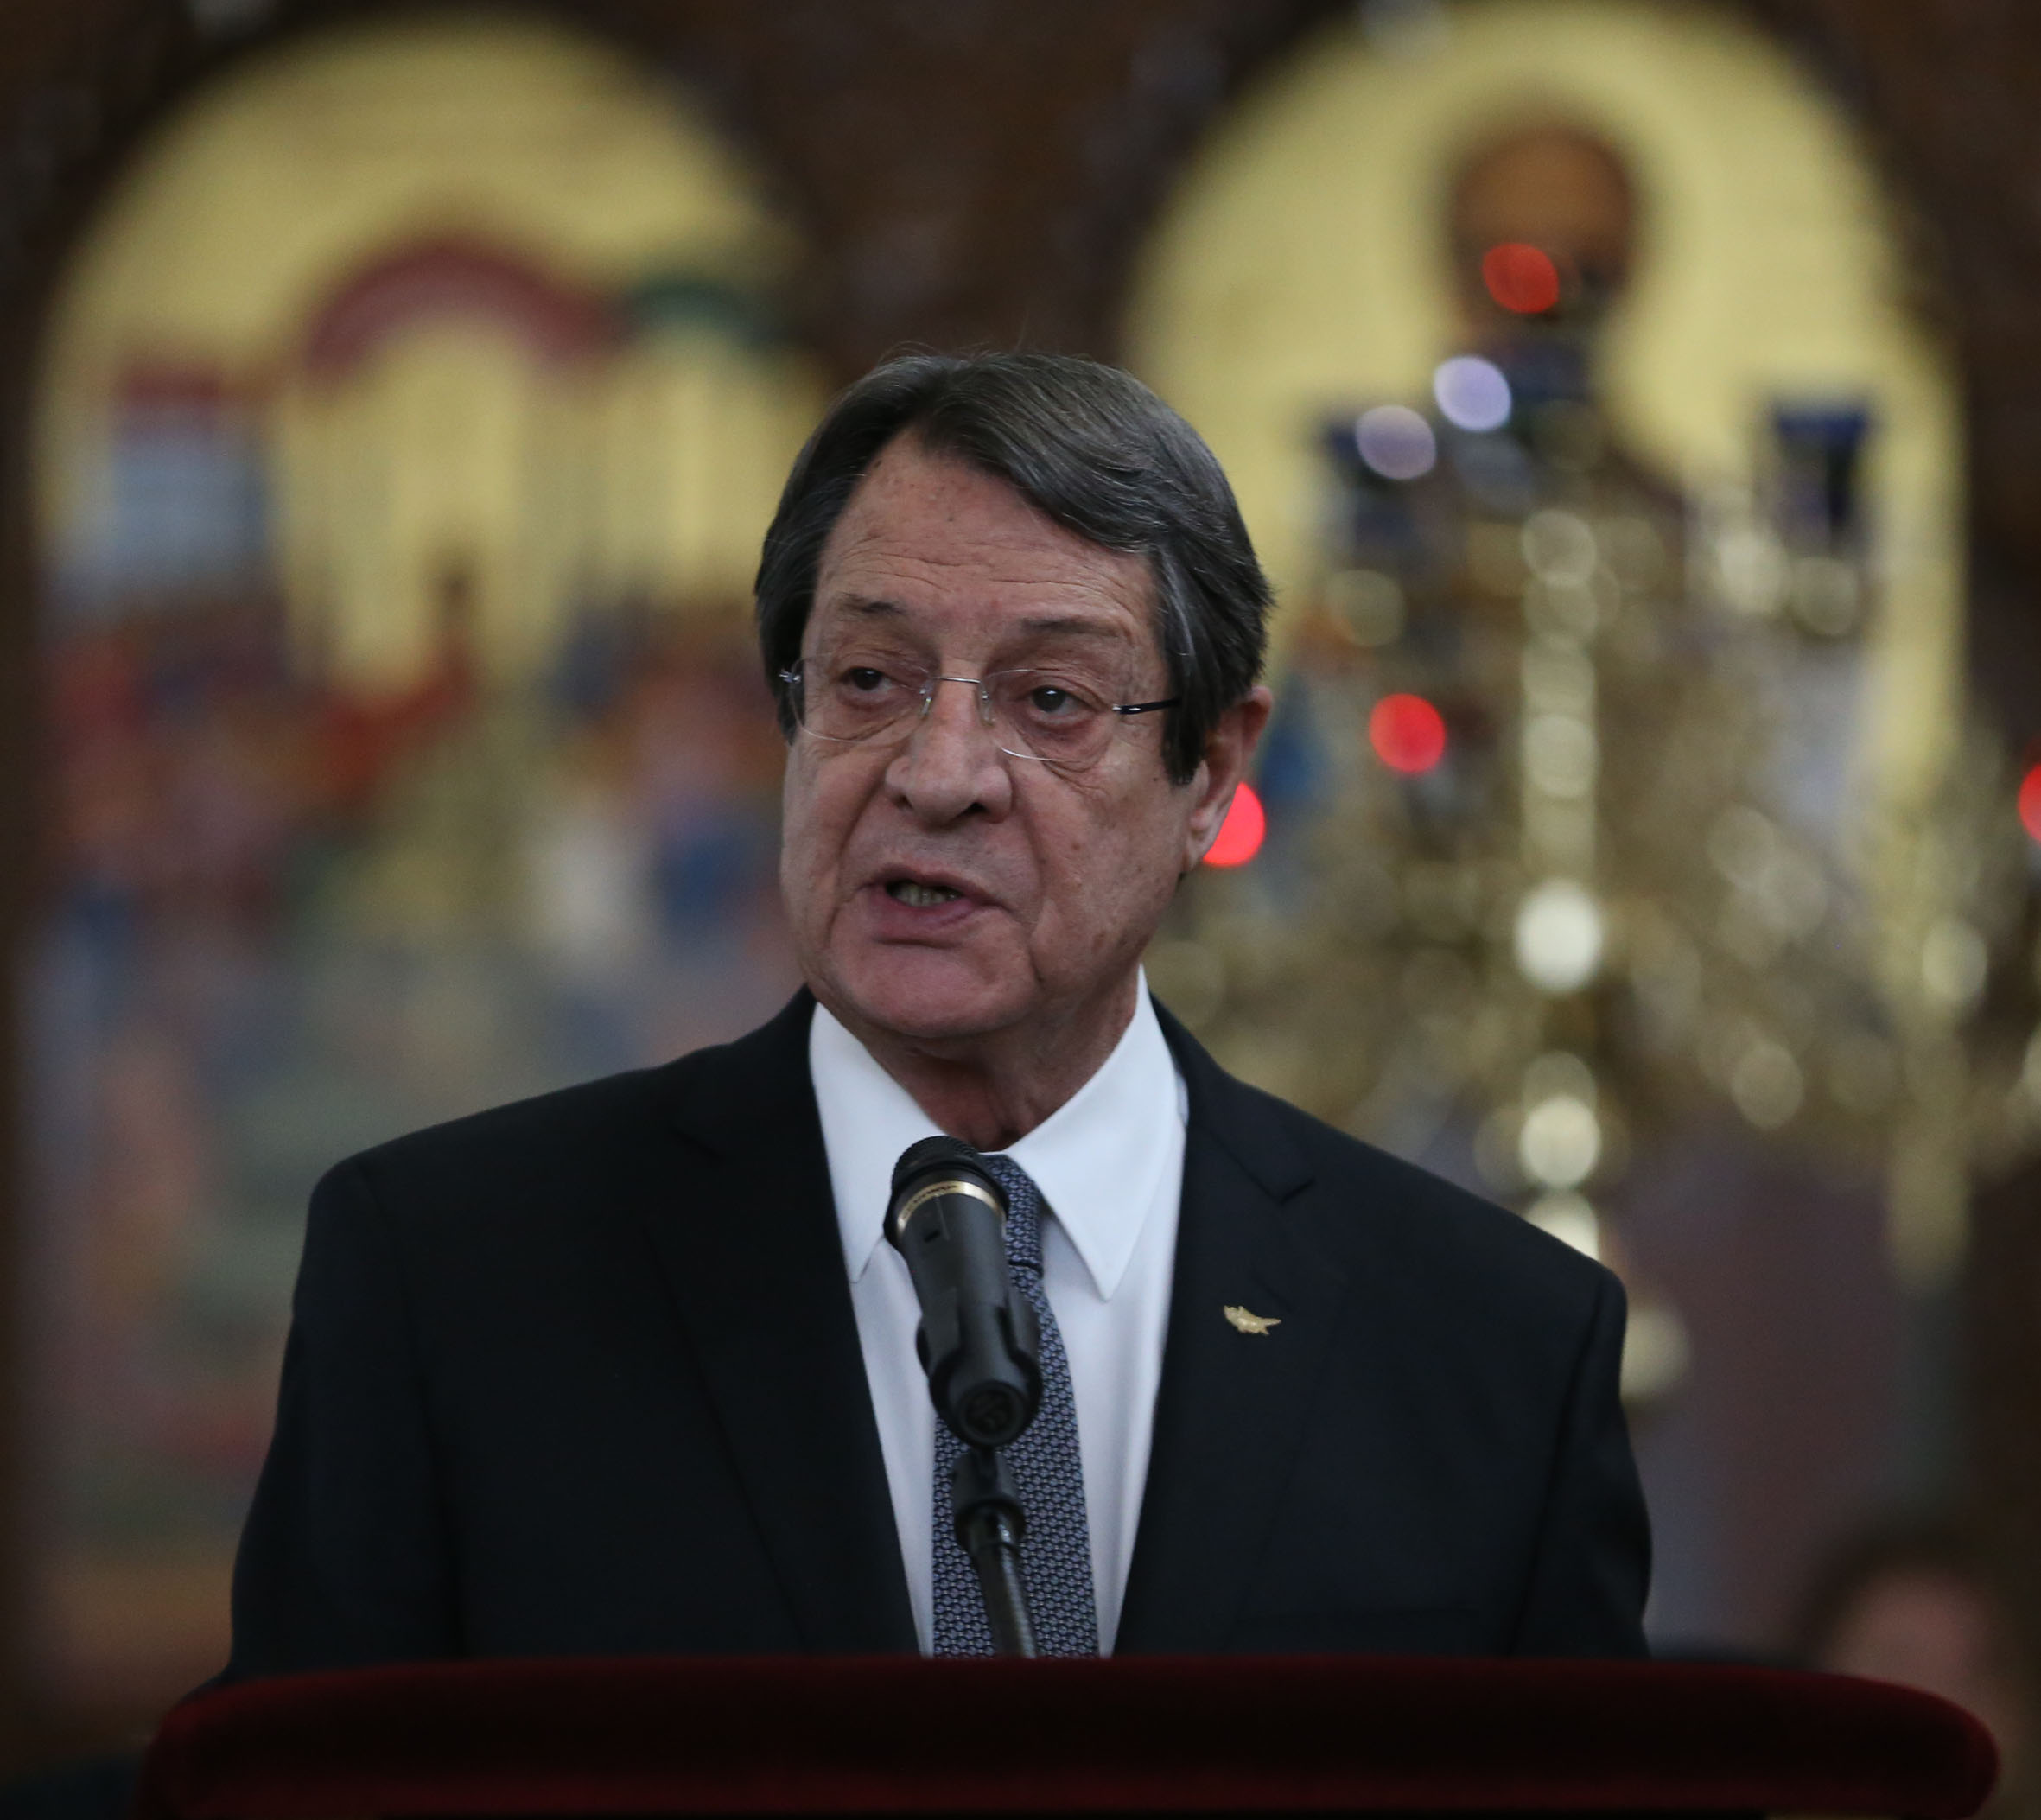 Mutual respect is needed in order to have prospect and future, President Anastasiades says